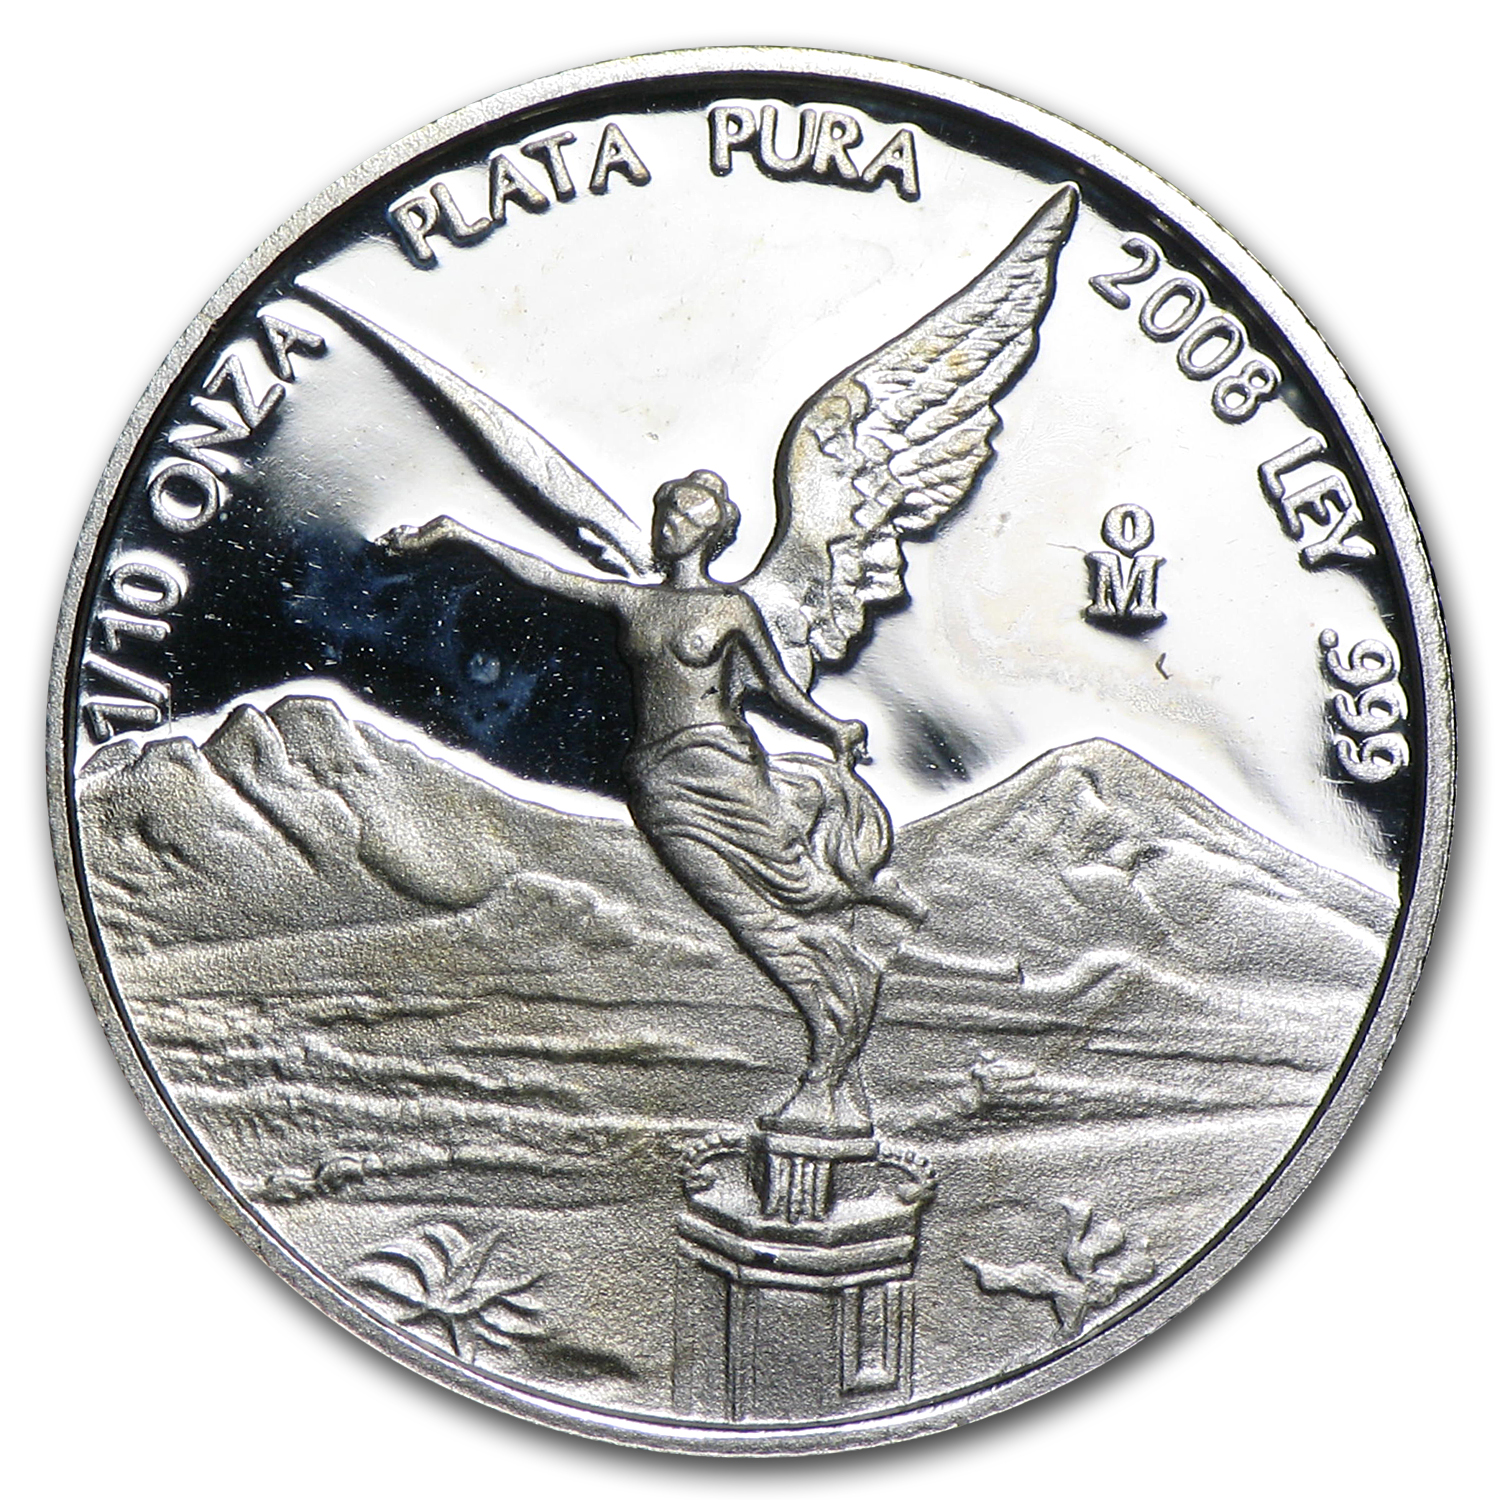 2008 1/10 oz Silver Mexican Libertad - Proof